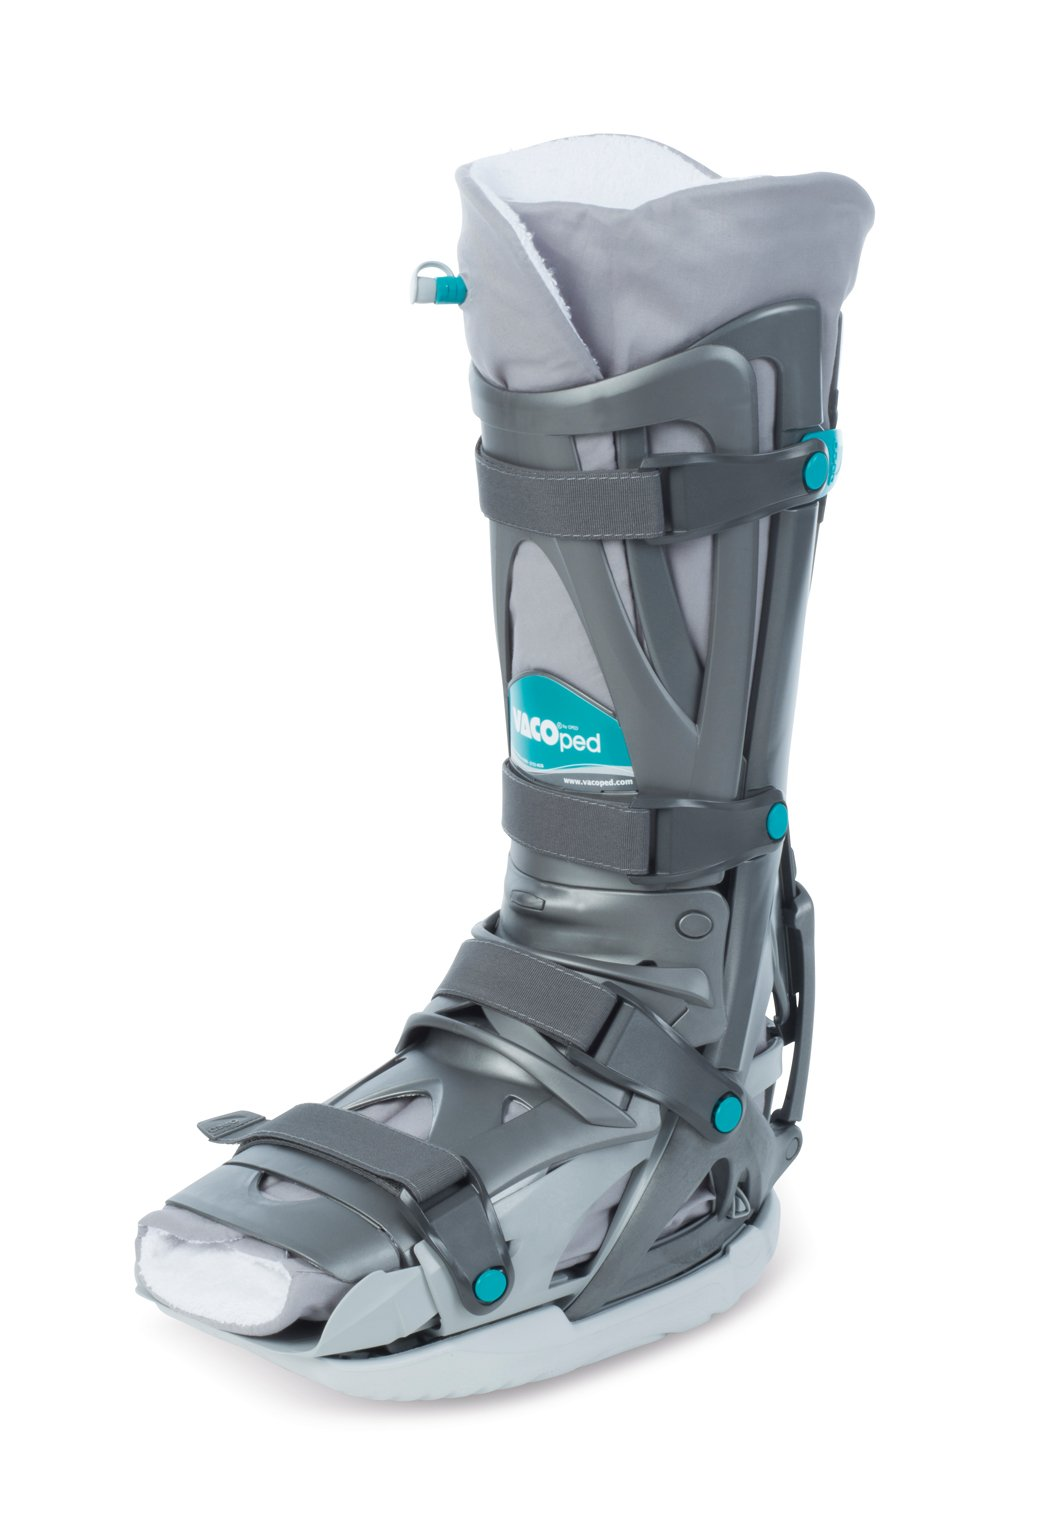 VACOped Achilles Injury/Fracture Orthosis Boot - Simply The Best Boot on The Market! by VACOped